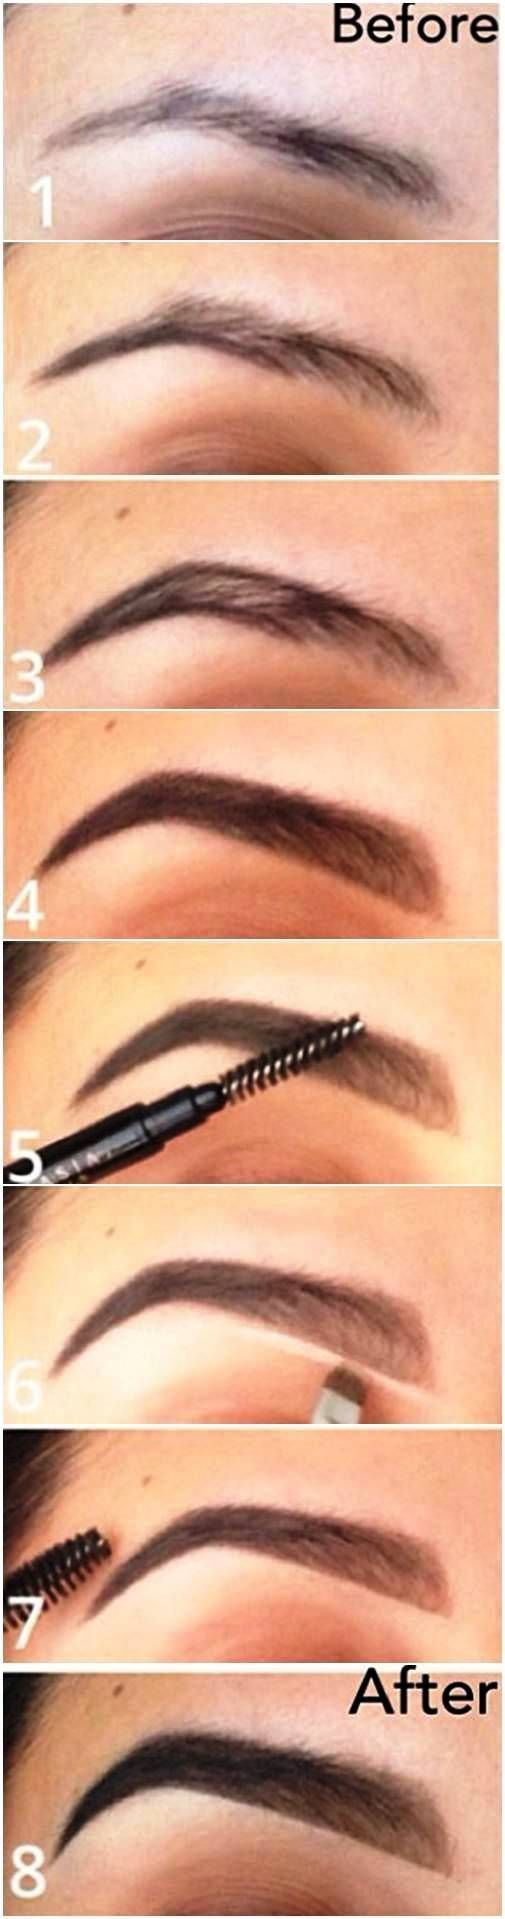 How to Get The Perfect Bomb Brows For Beginners